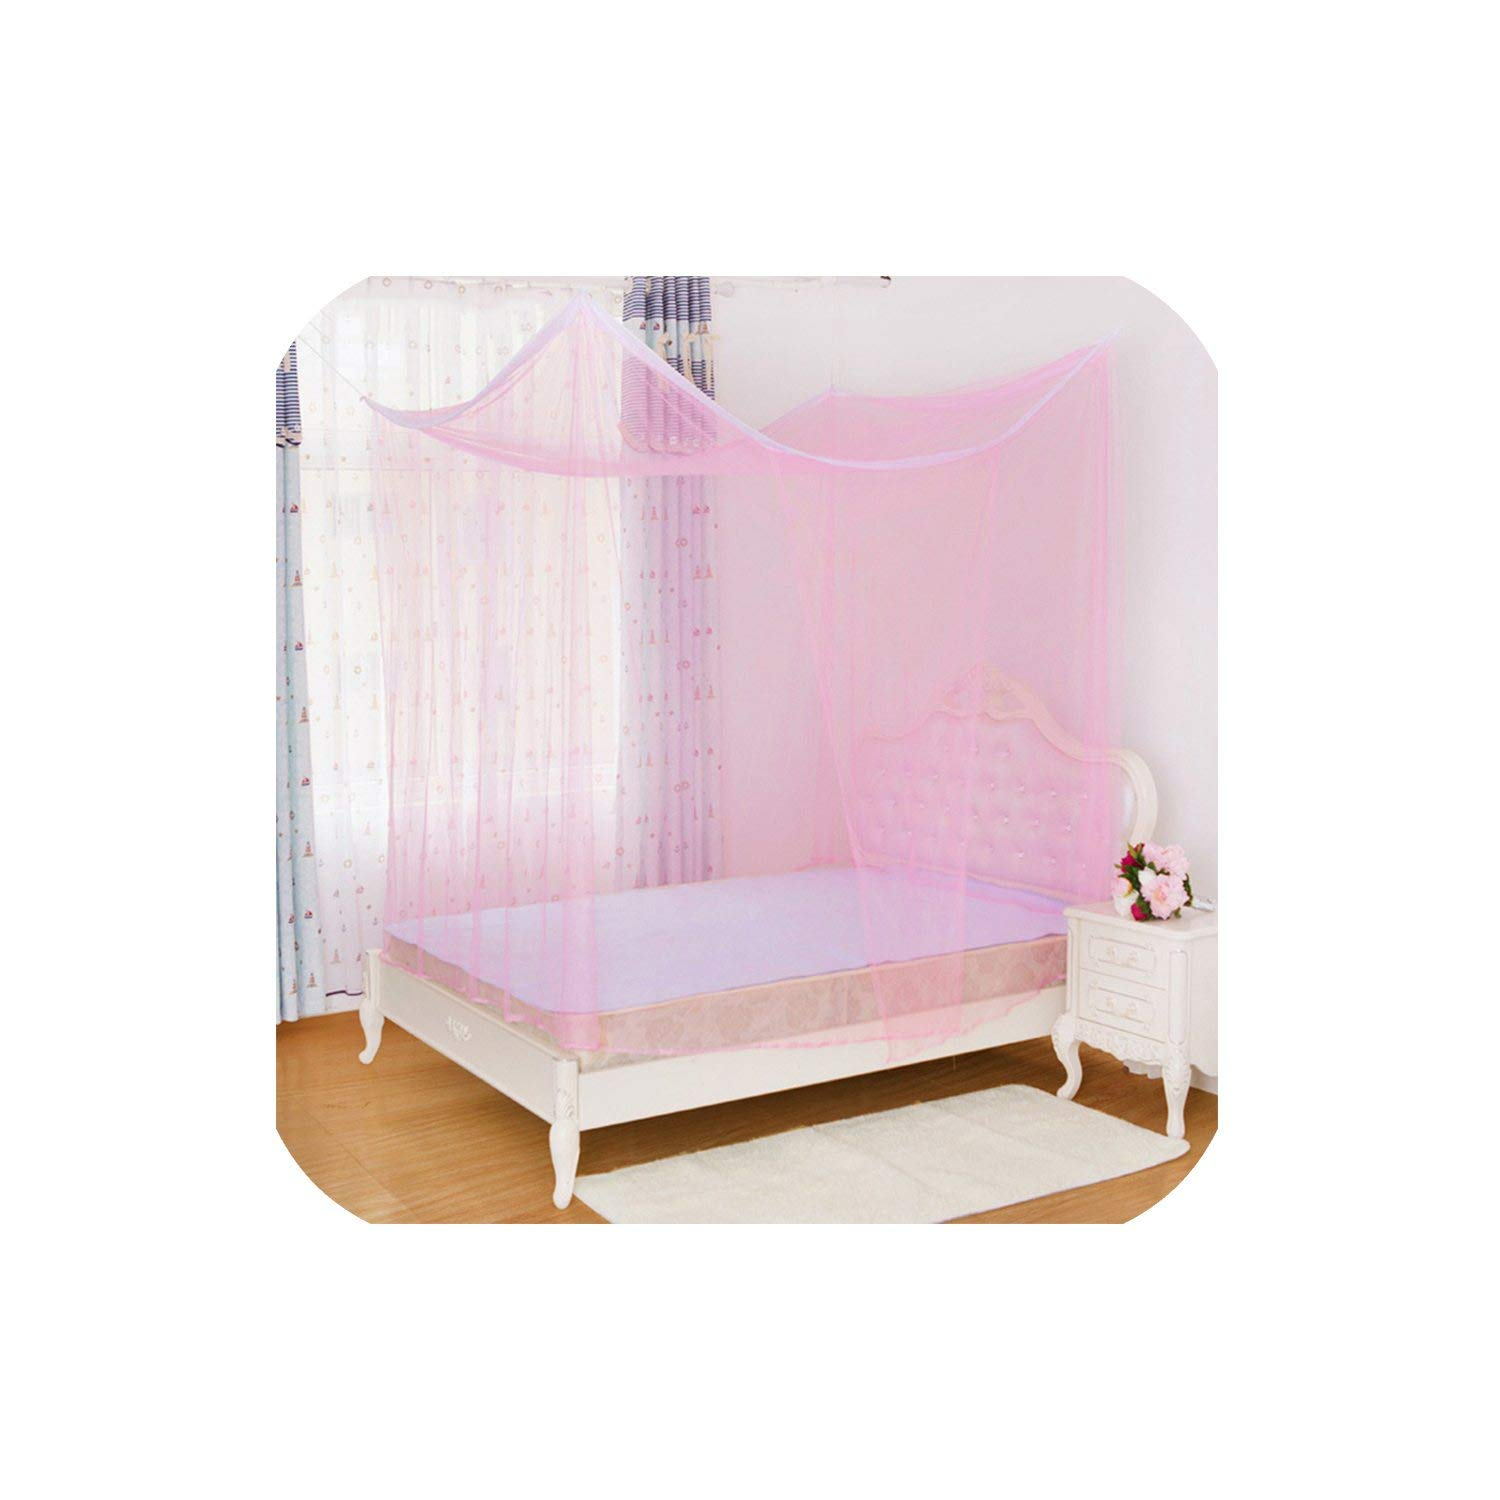 Universal Design Homes Mosquito Net for Double Bed Canopies Adults Single Door Mosquito Net Summer Bed Canopy Plsize,Pink,150X200X200Cm